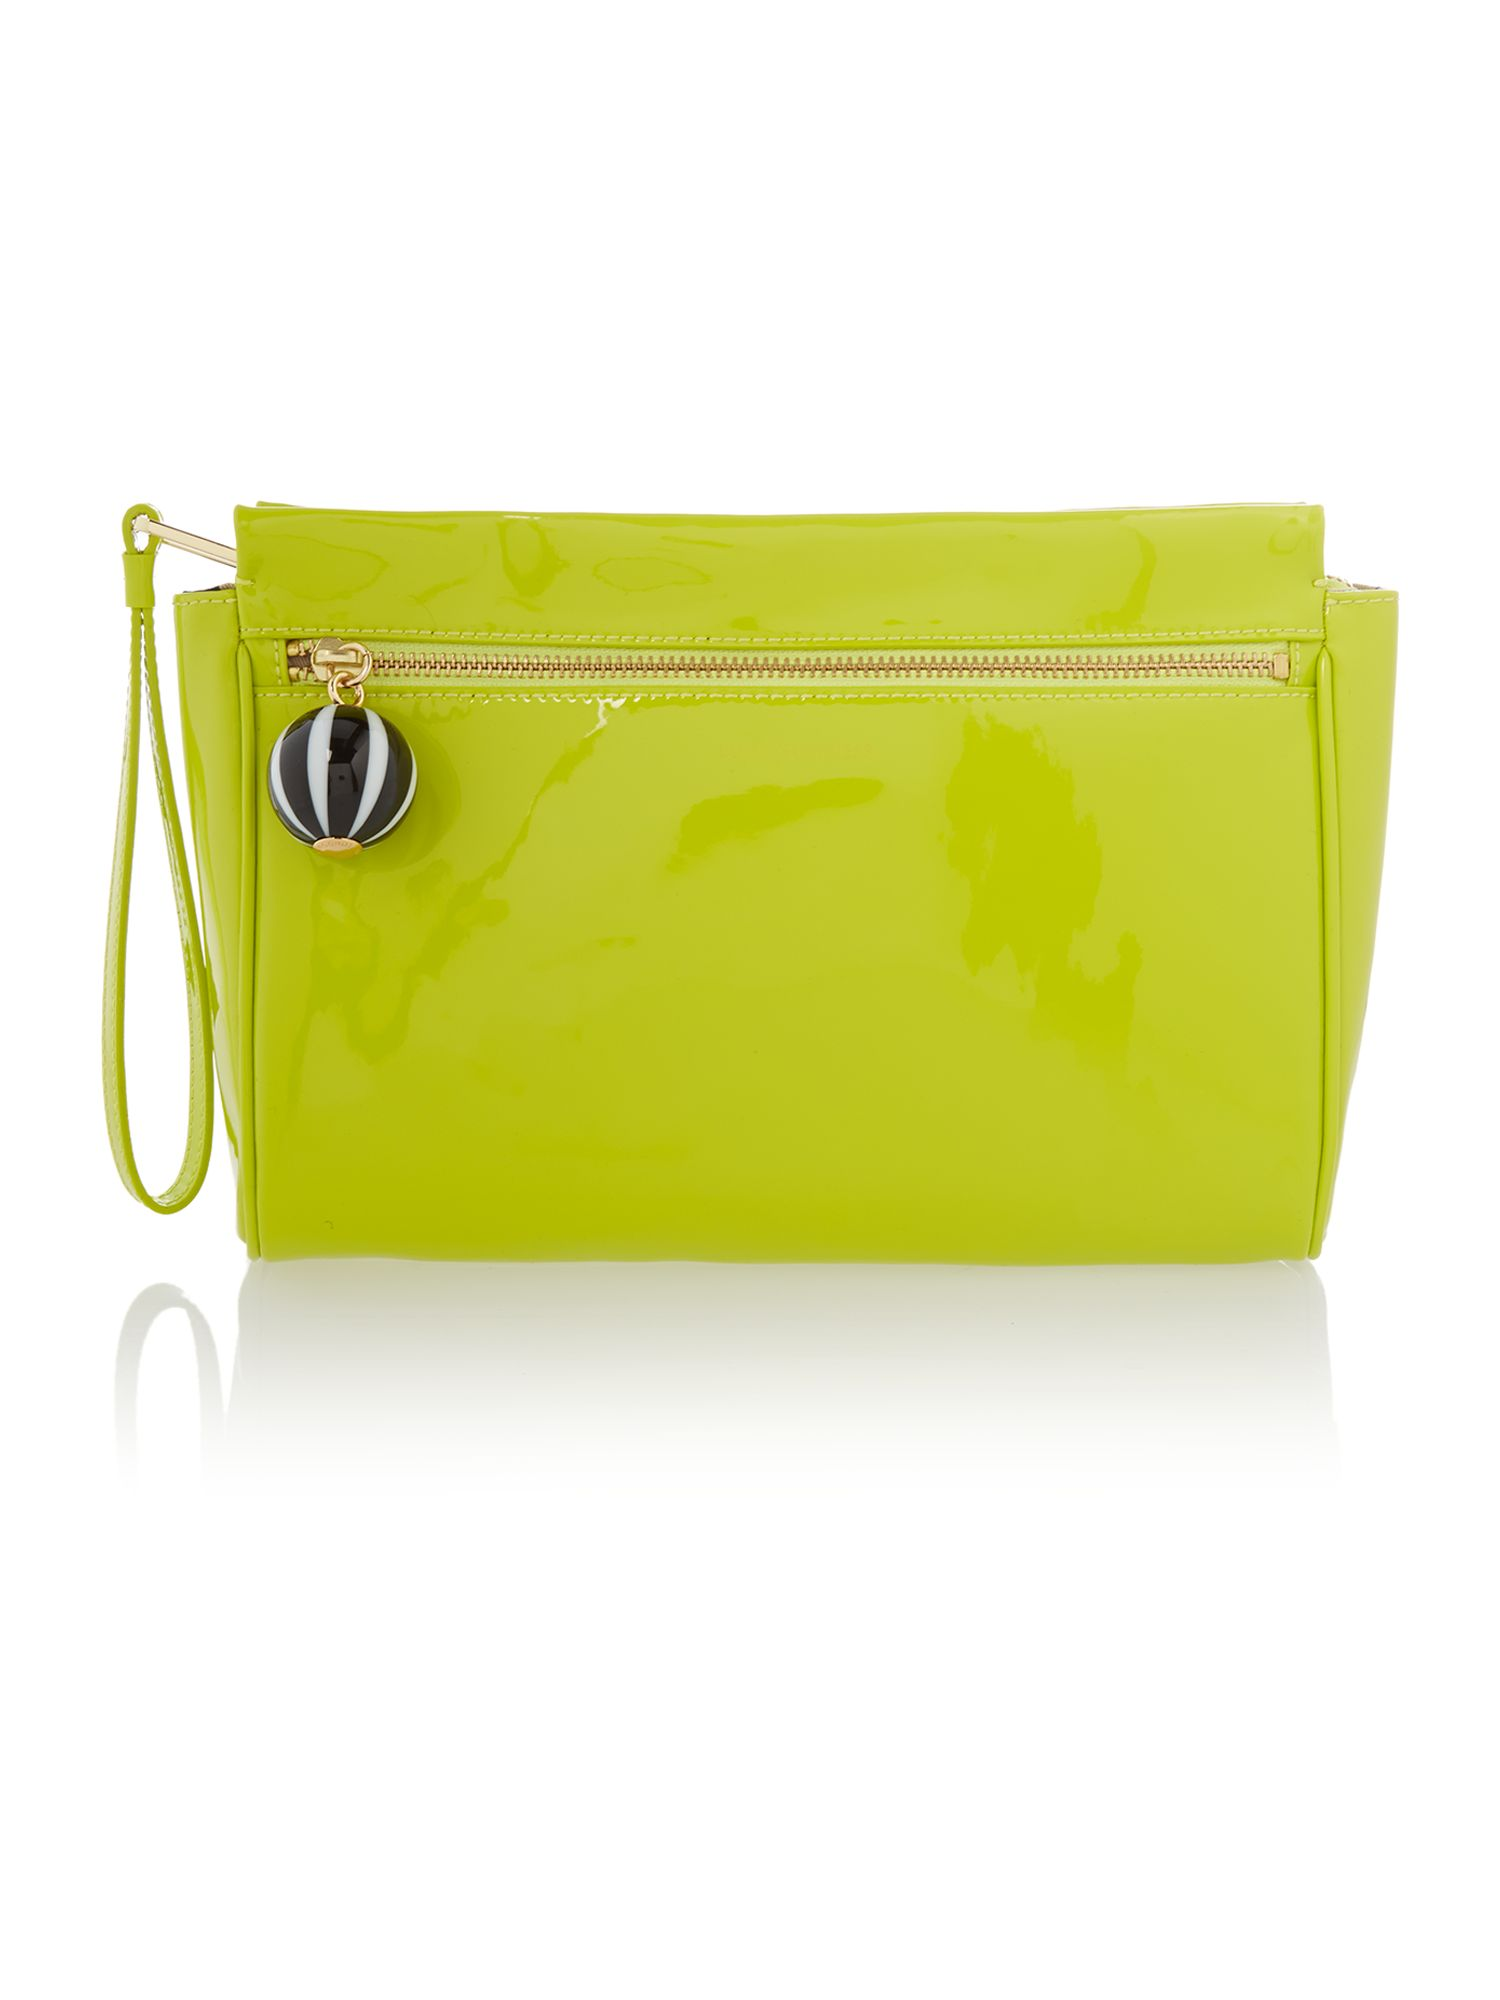 Katie patent yellow clutch bag